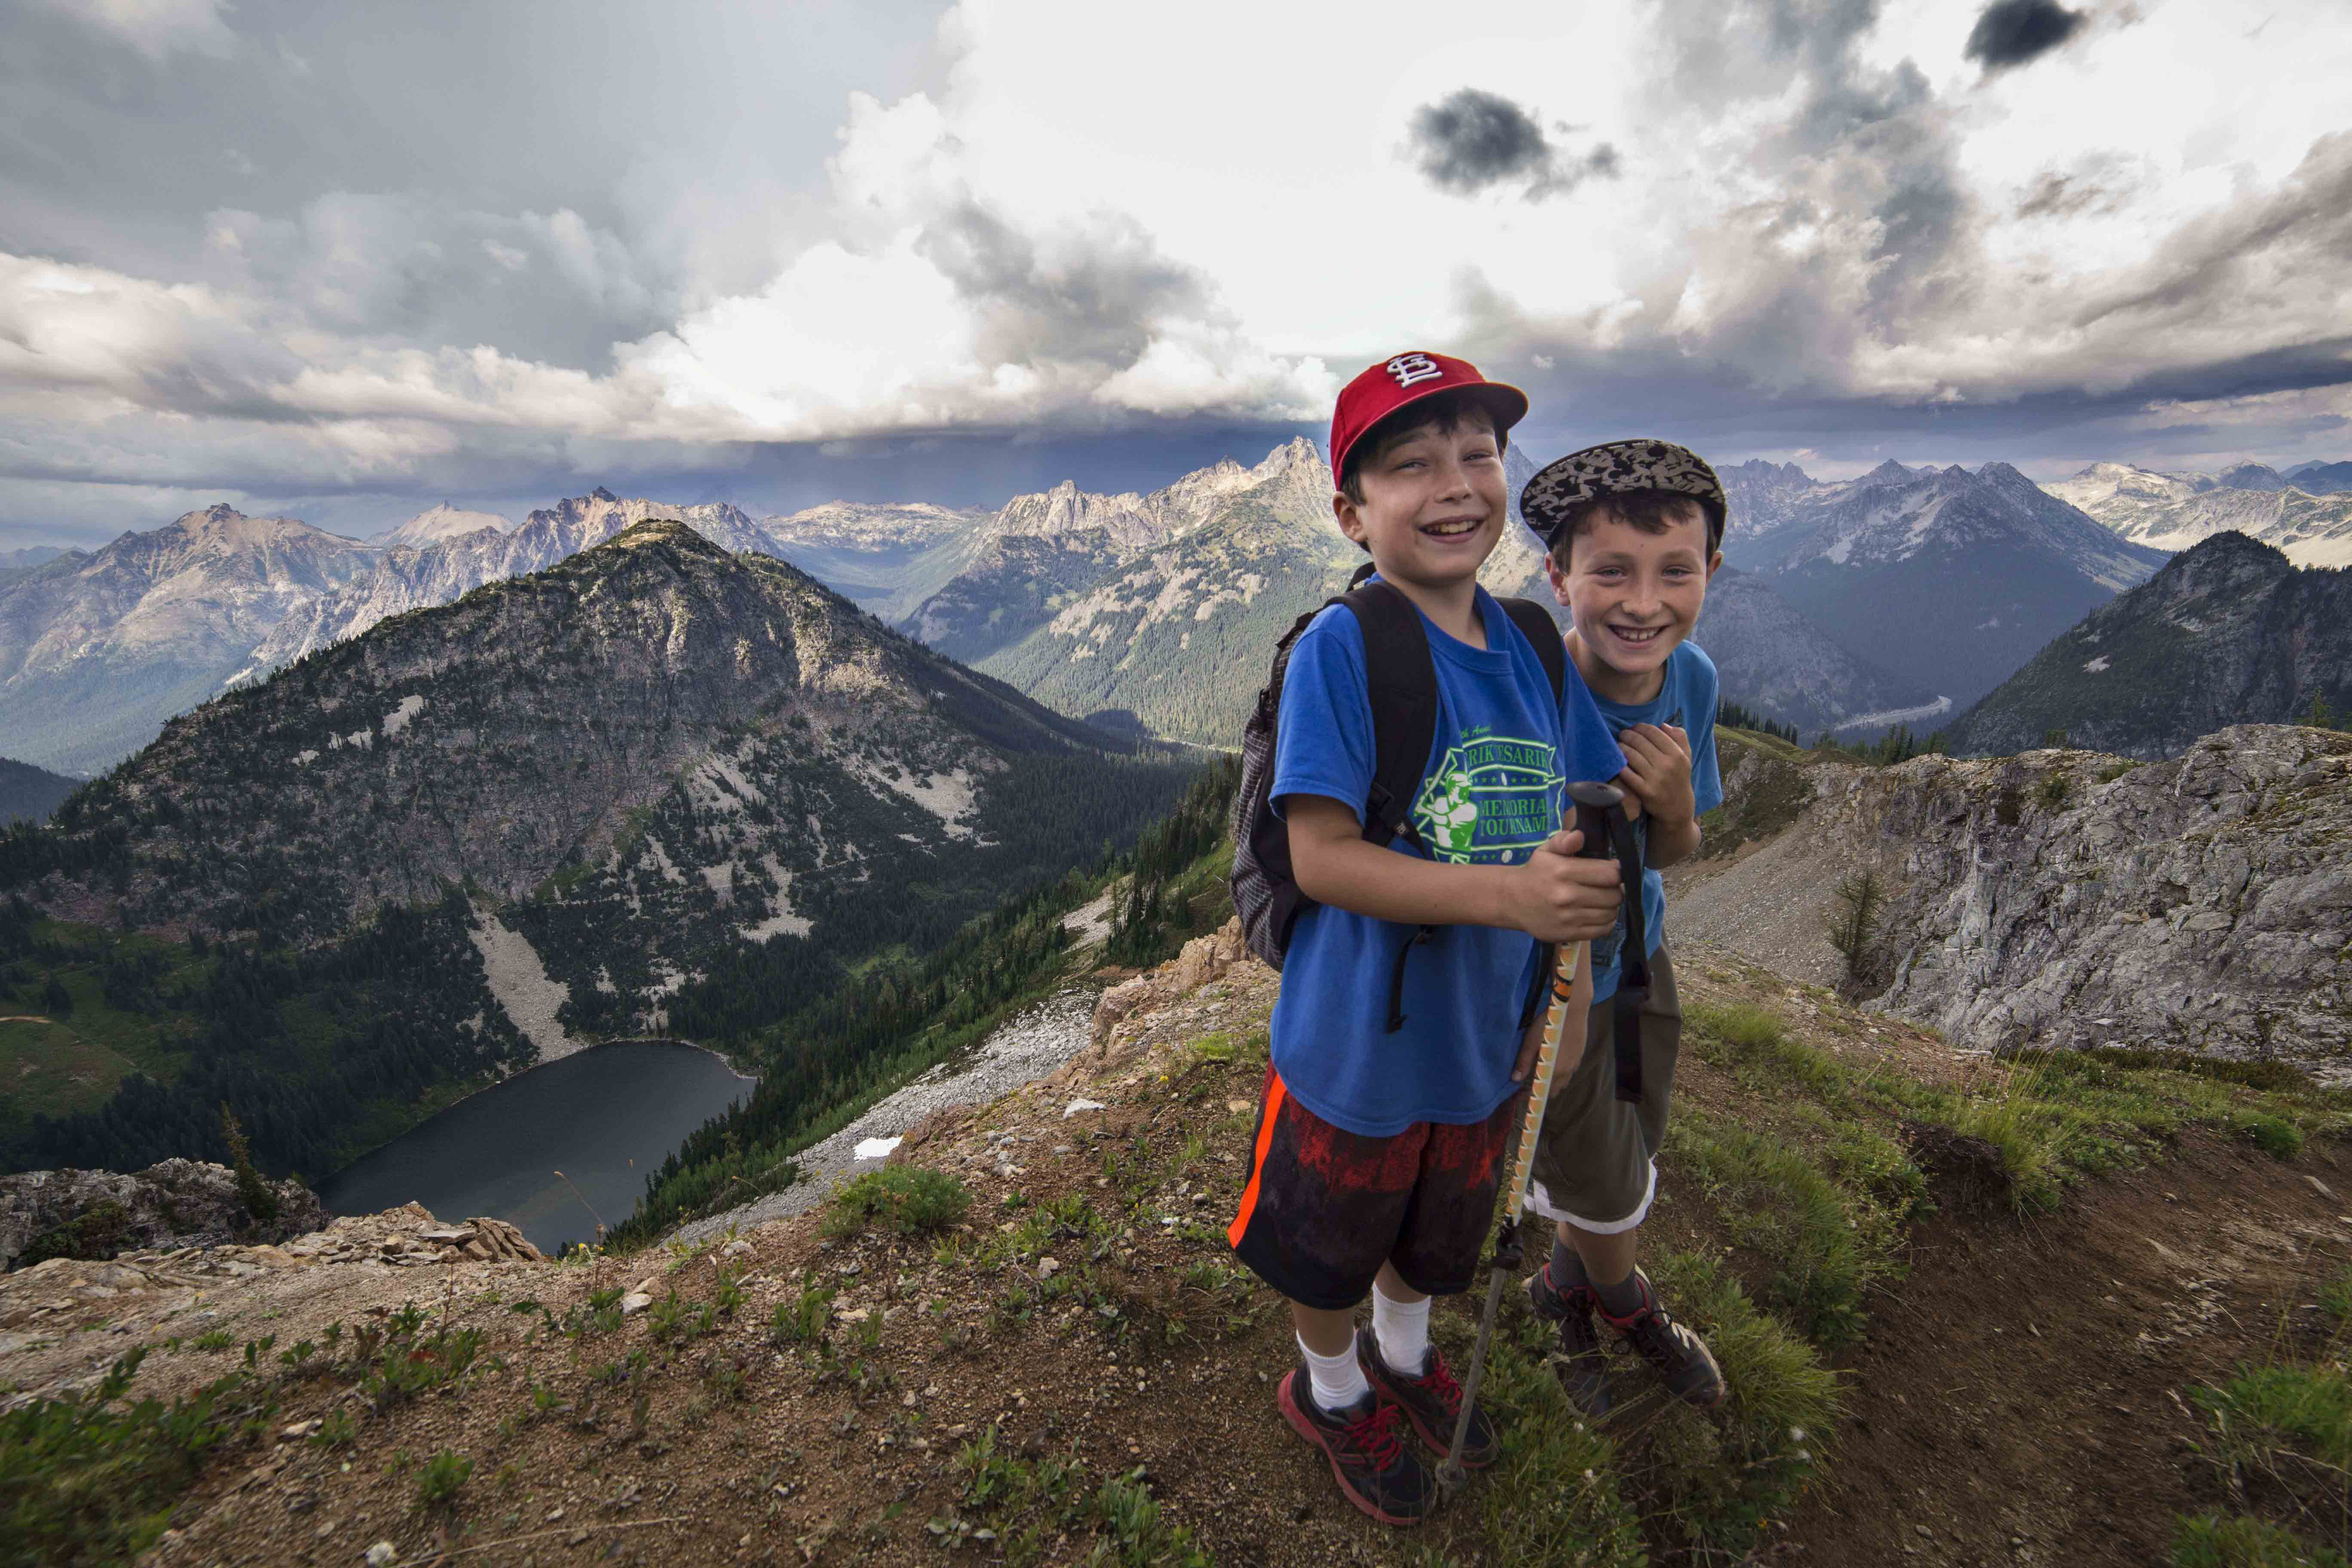 When Kids Get Lost: Preparing Your Child to be Safe Outside